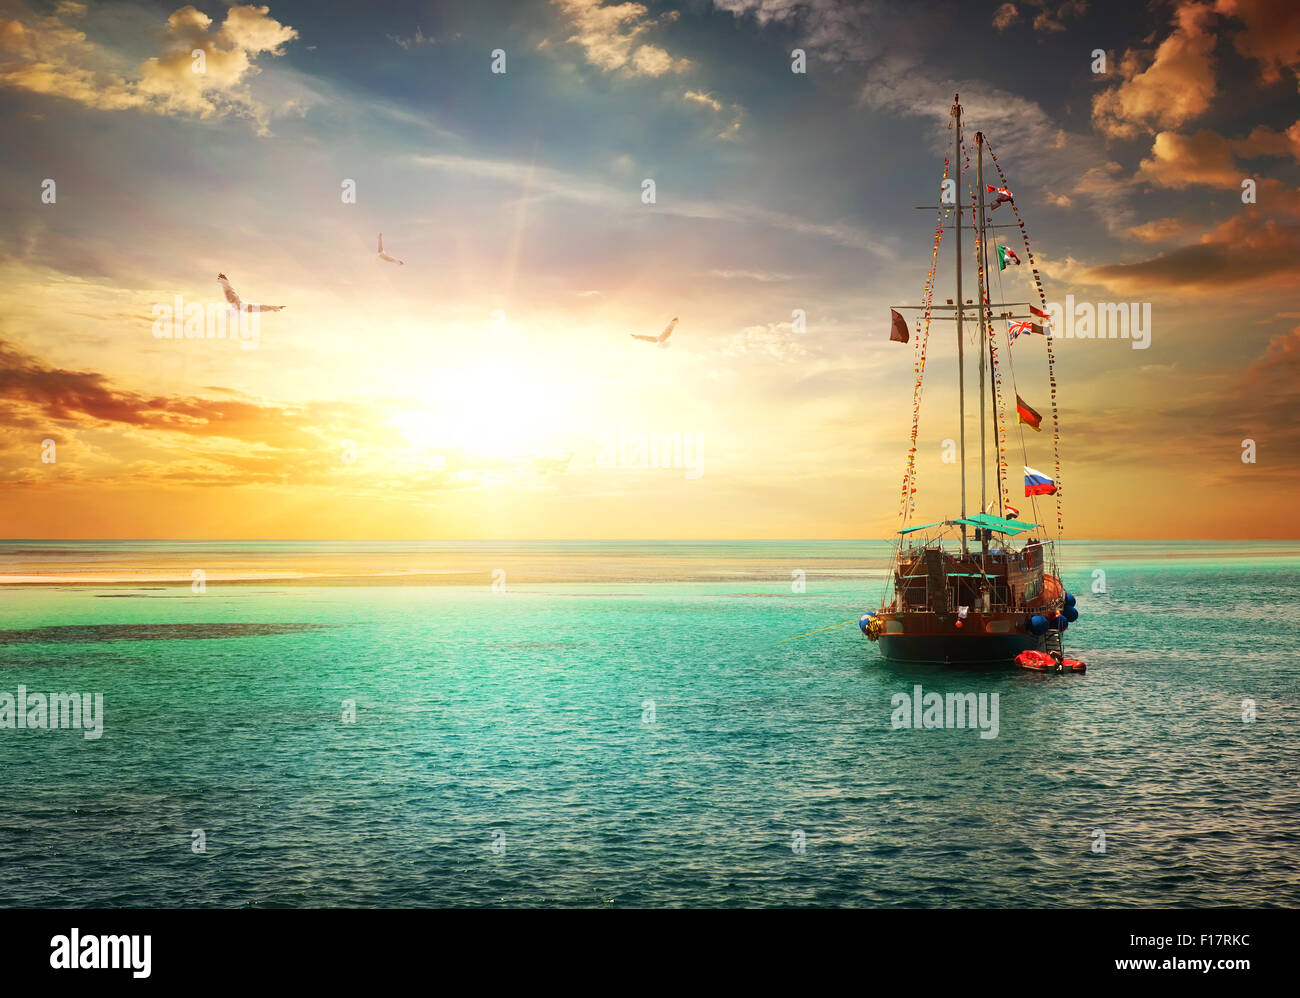 Beautiful sunset over yacht in the sea - Stock Image